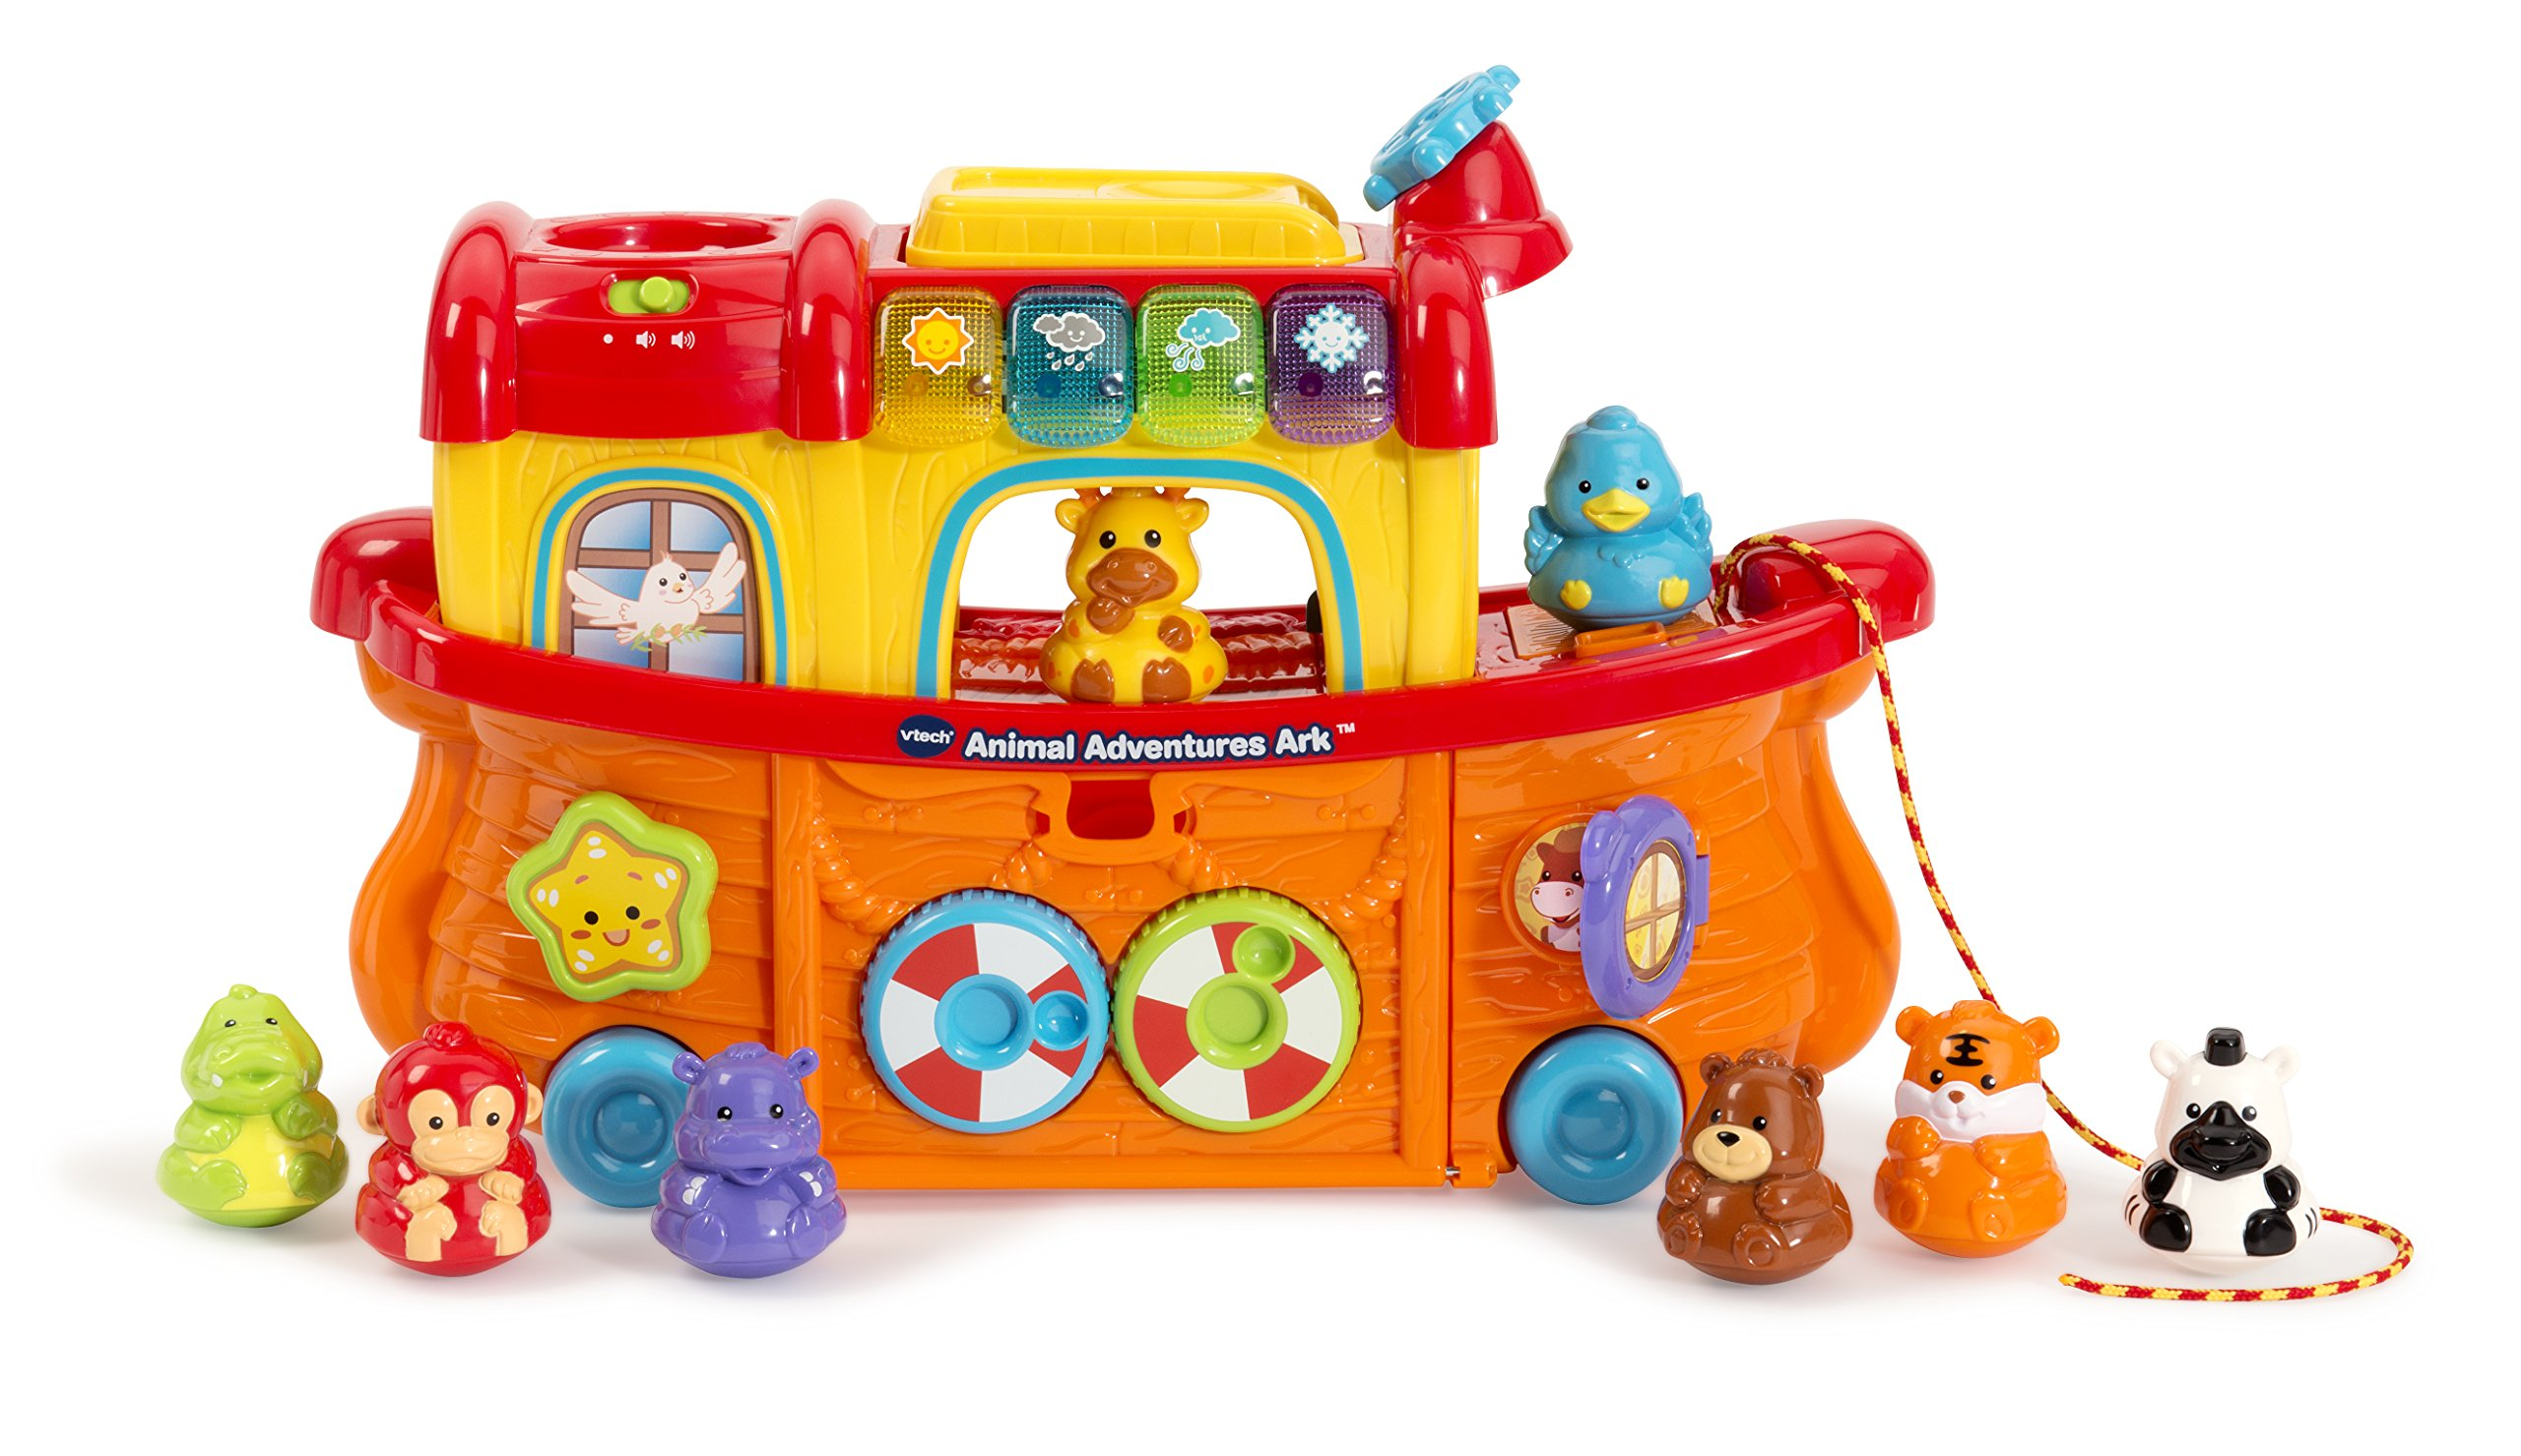 VTech Animal Adventures Ark by VTech